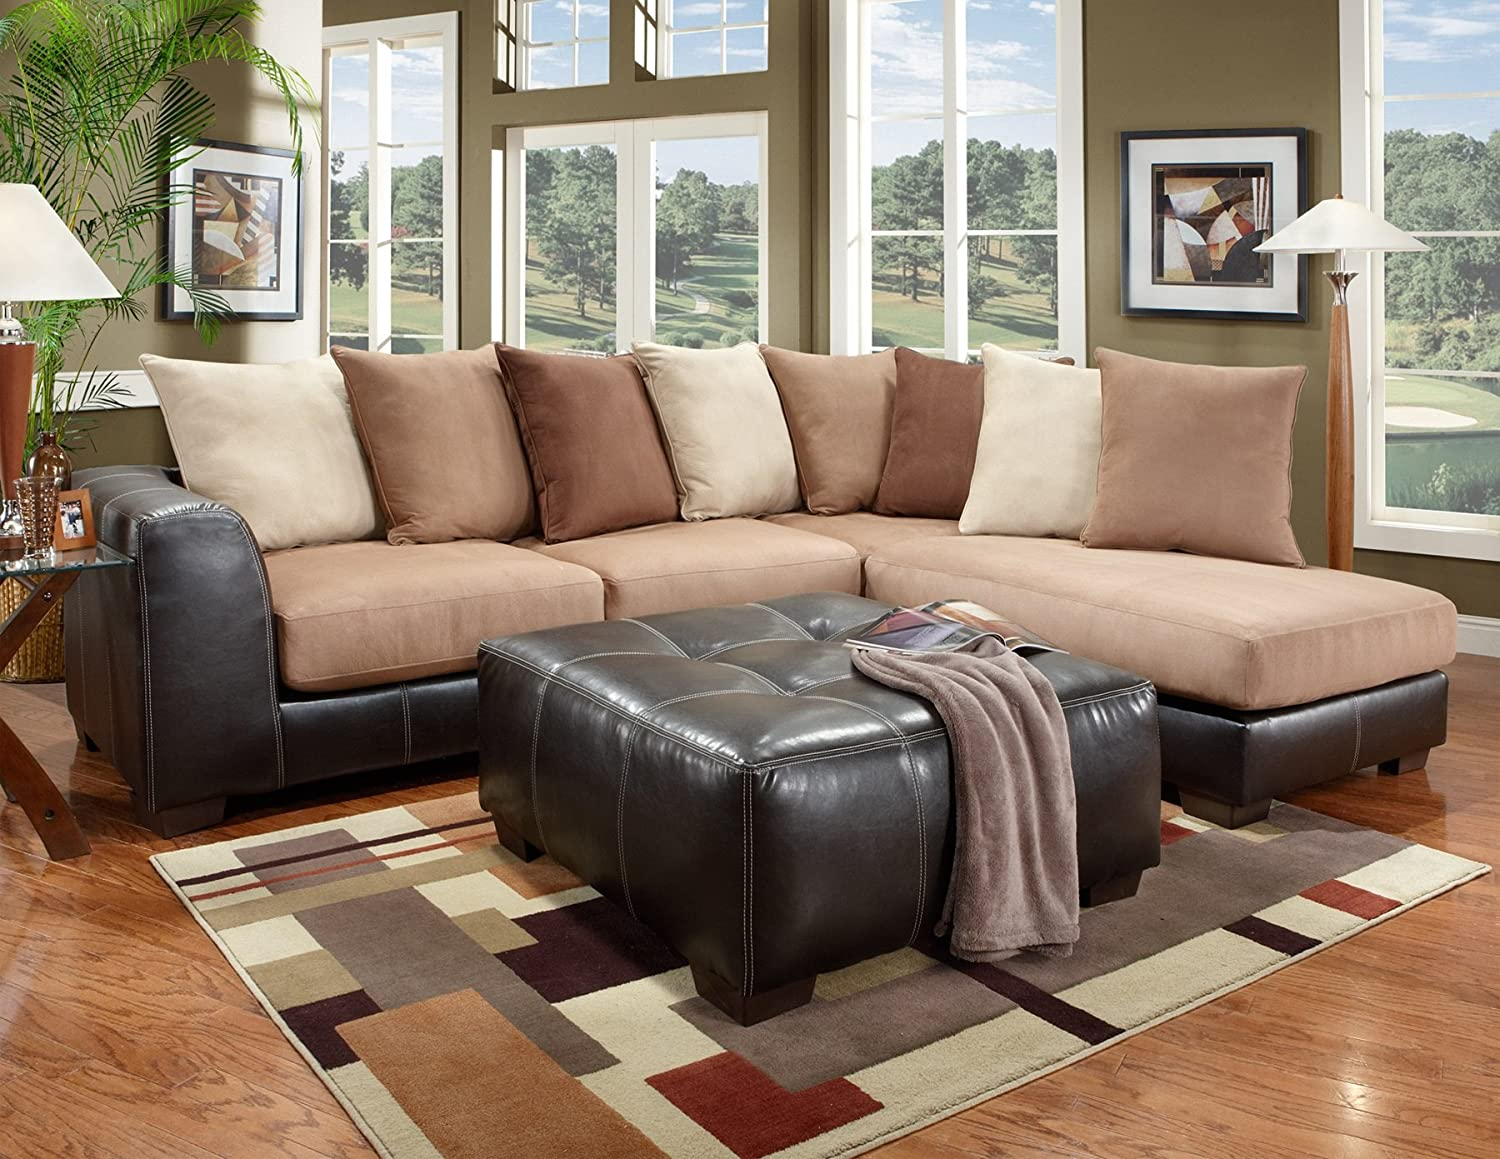 couch photos own canyon series elegant sofa sectional the peter of inspirational build lorentz by your tan